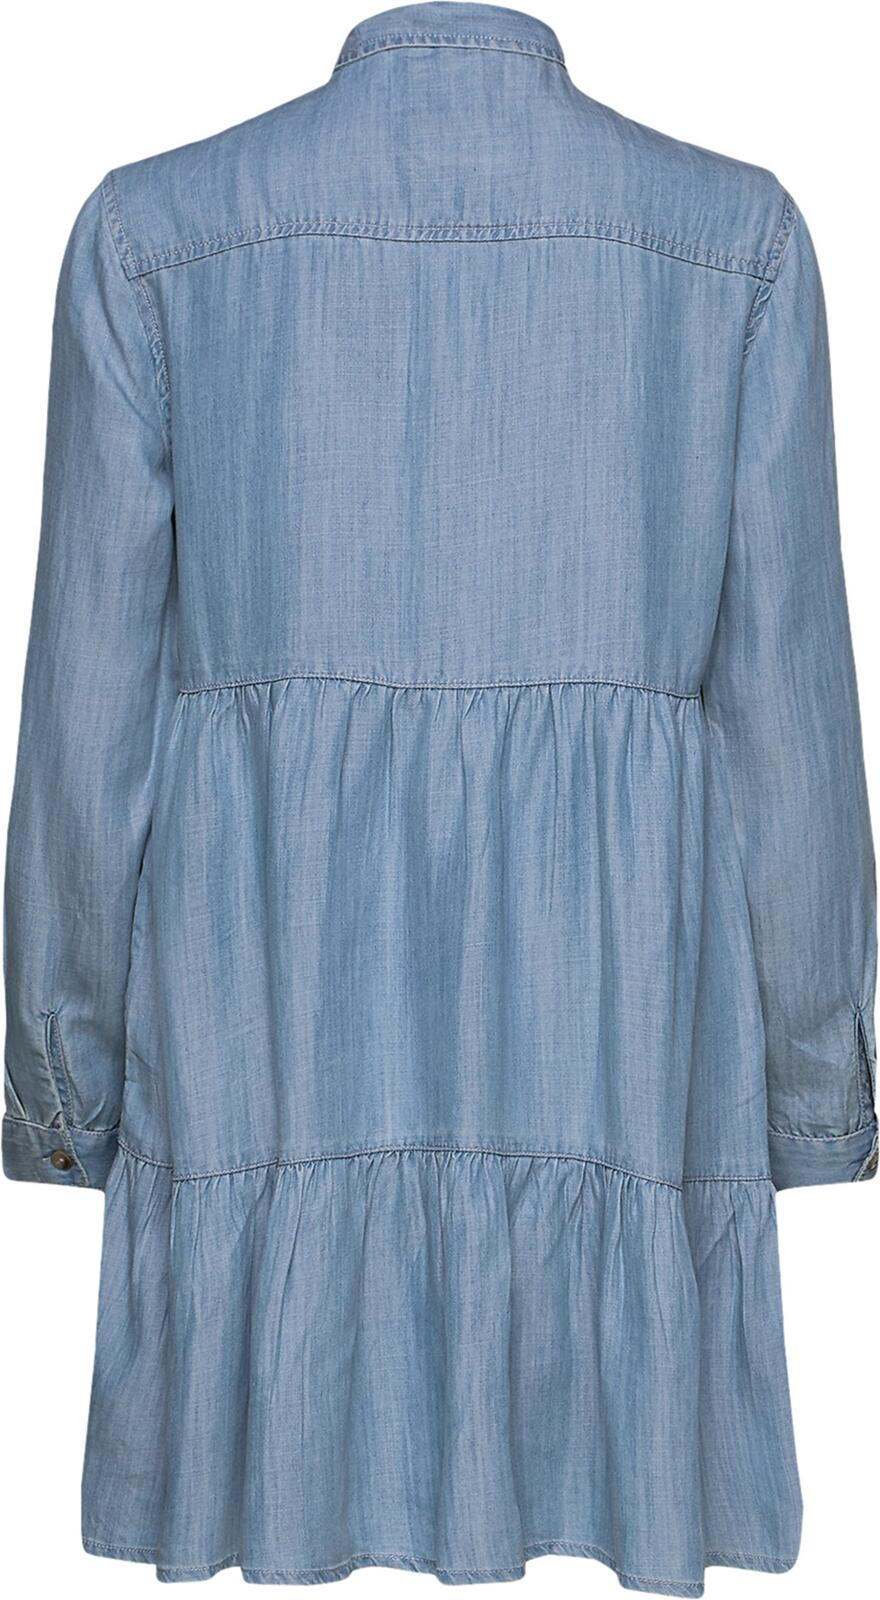 Superdry Tiered Shirt Dress	Light Indigo Used